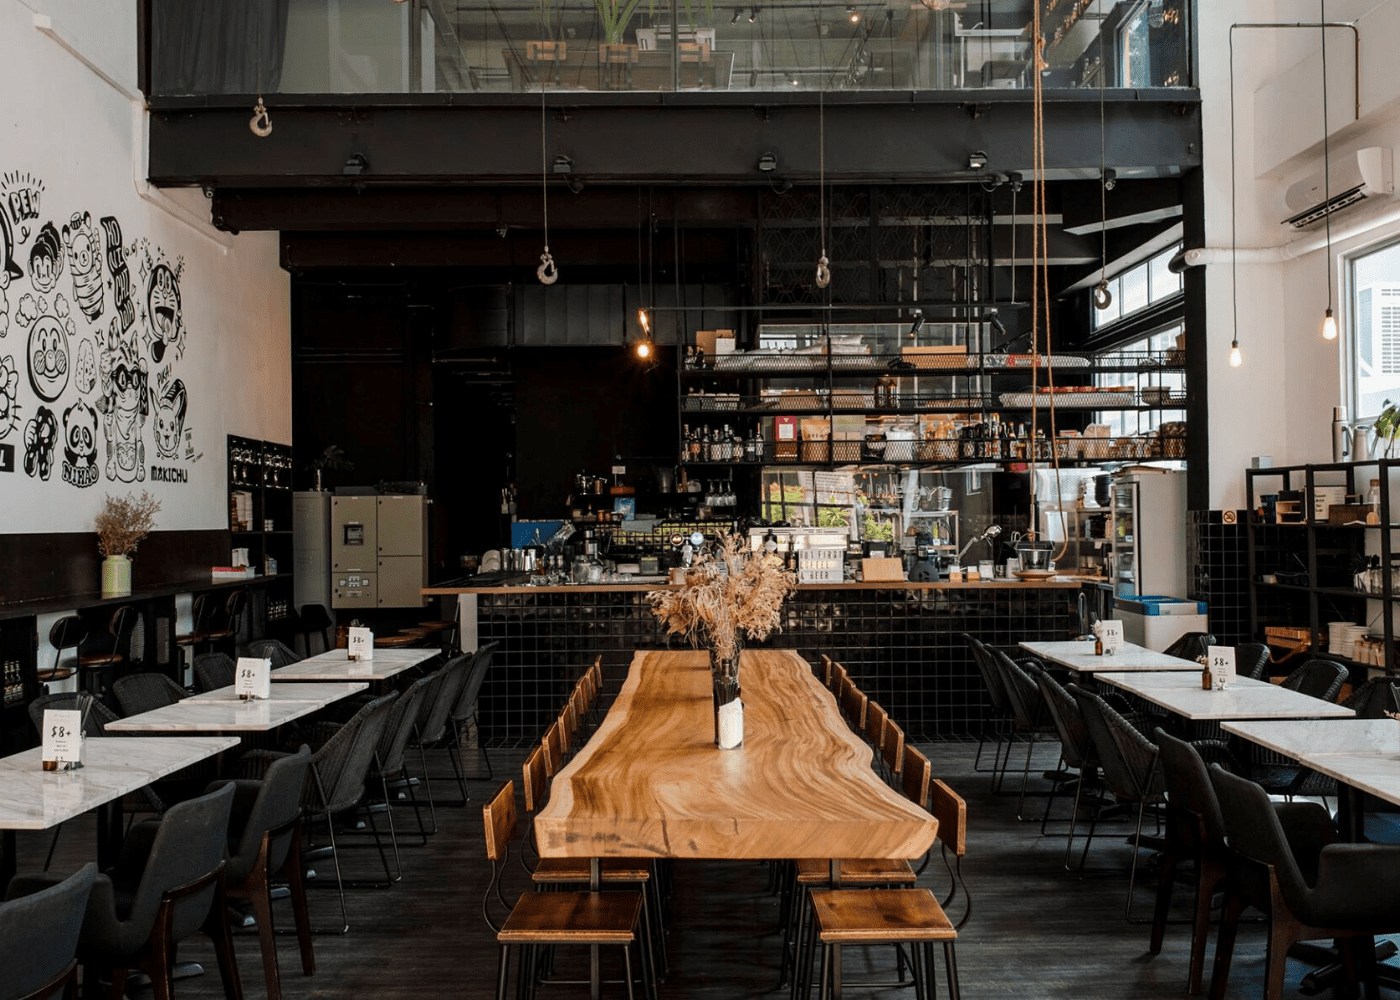 Best cafes in singapore: The refinery